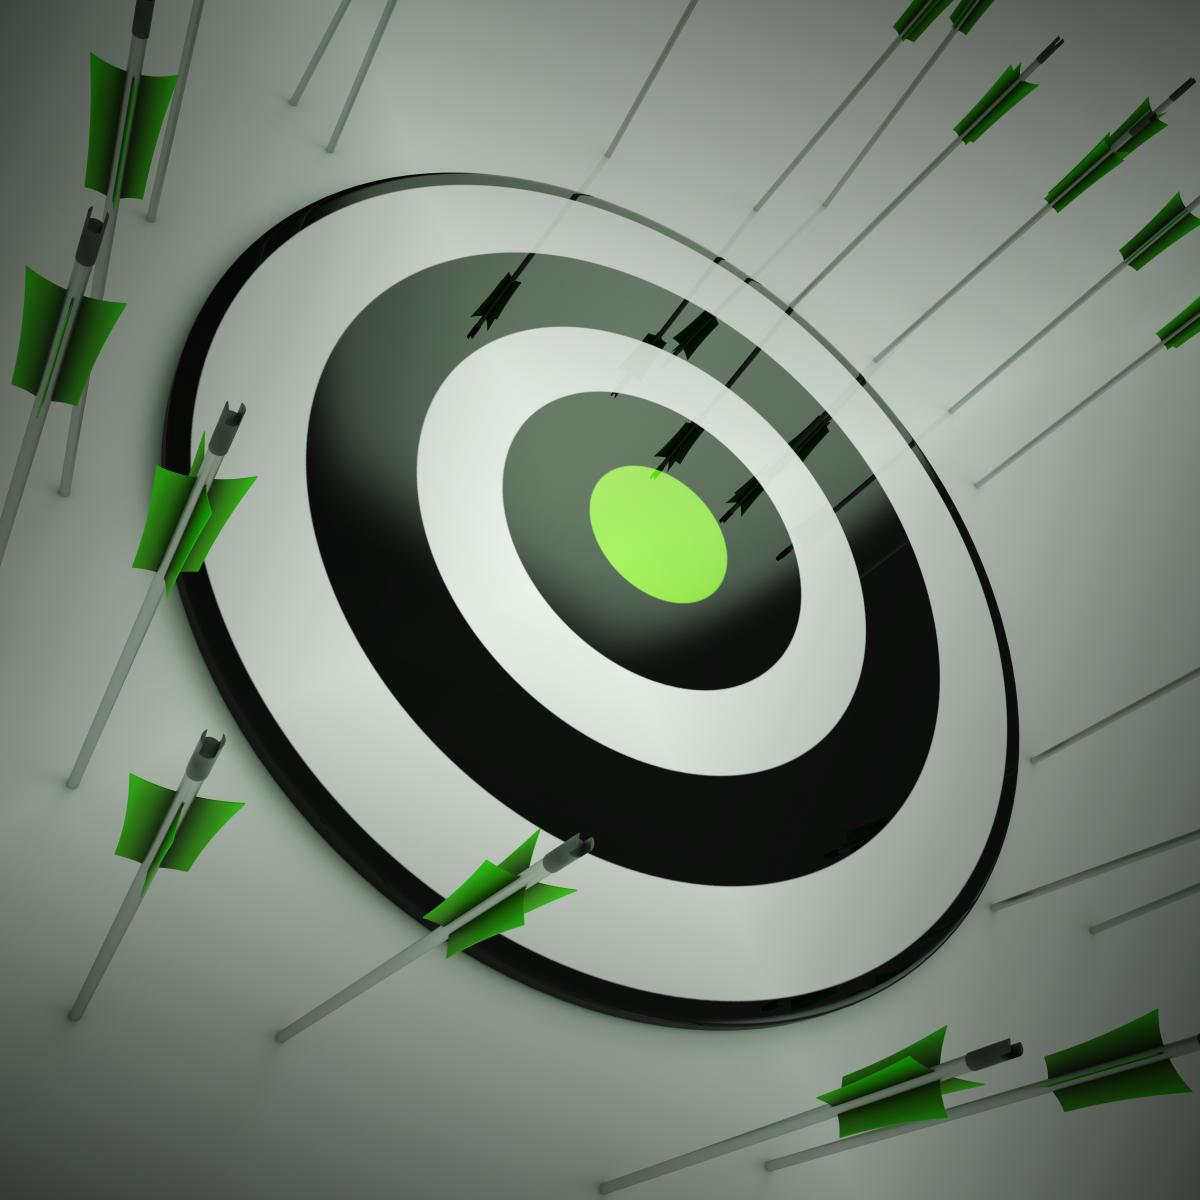 black-and-white-archery-target-with-missed-green-arrows